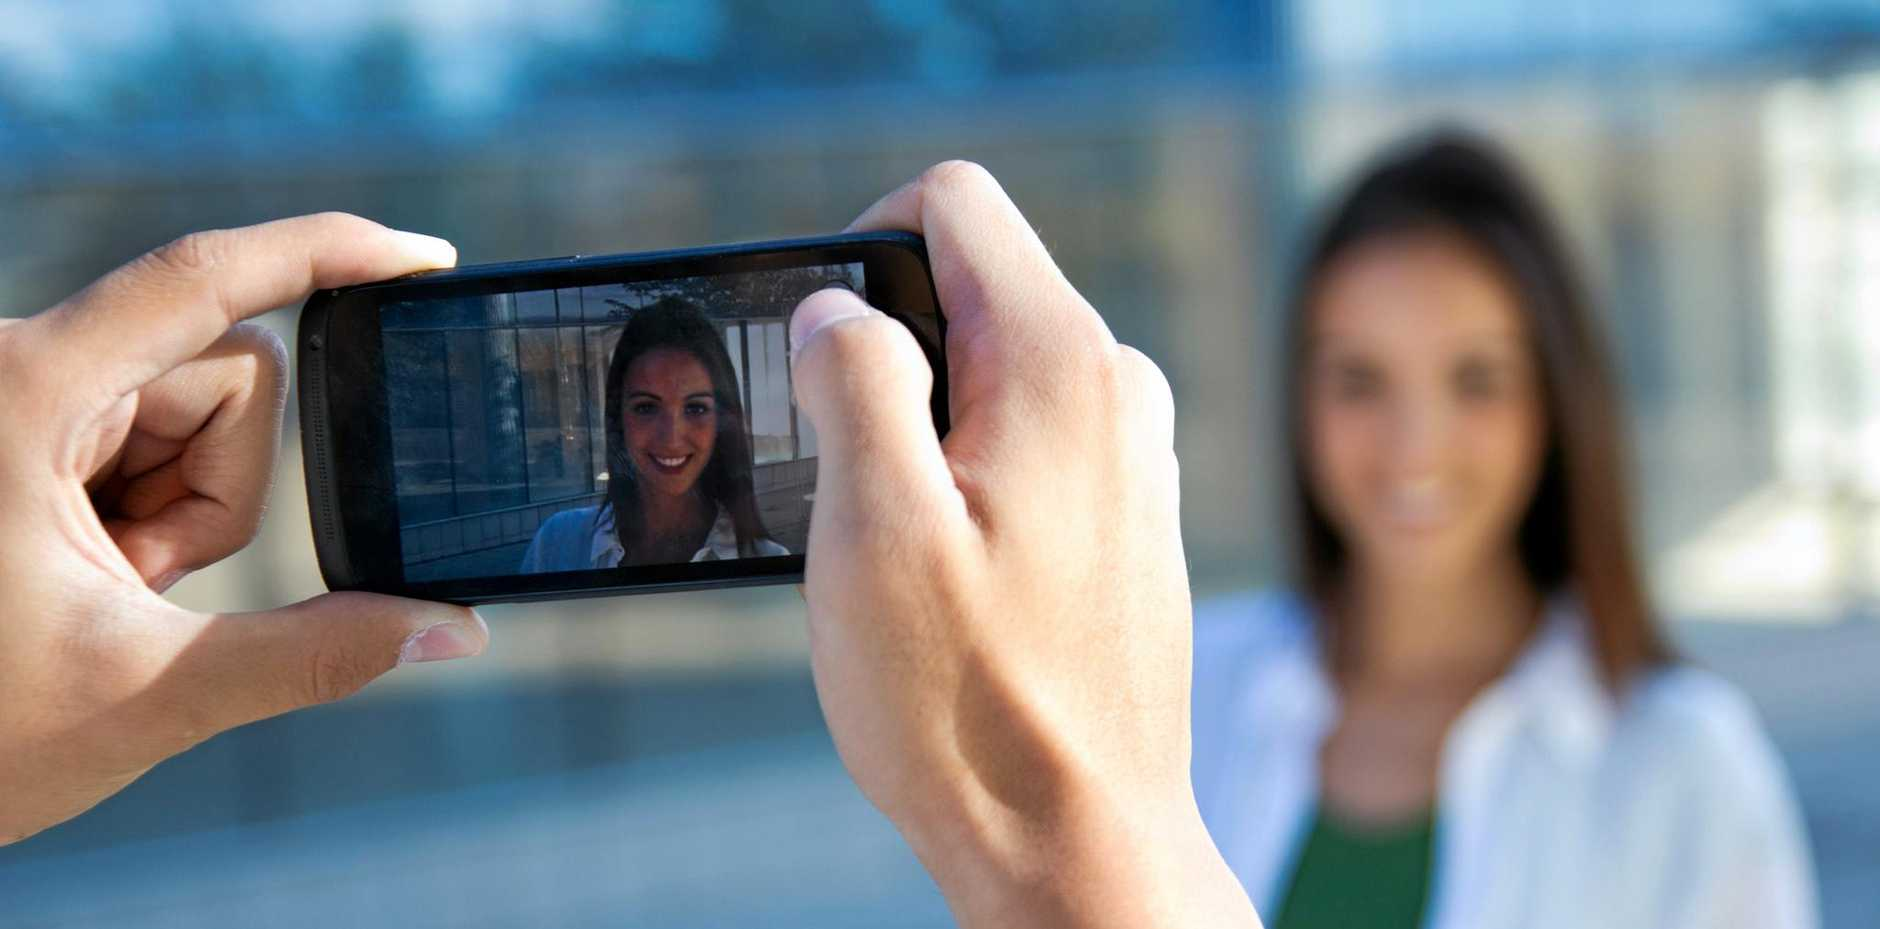 KEEP IT NATURAL: Where possible have yourself and/or key employees speak directly to camera.